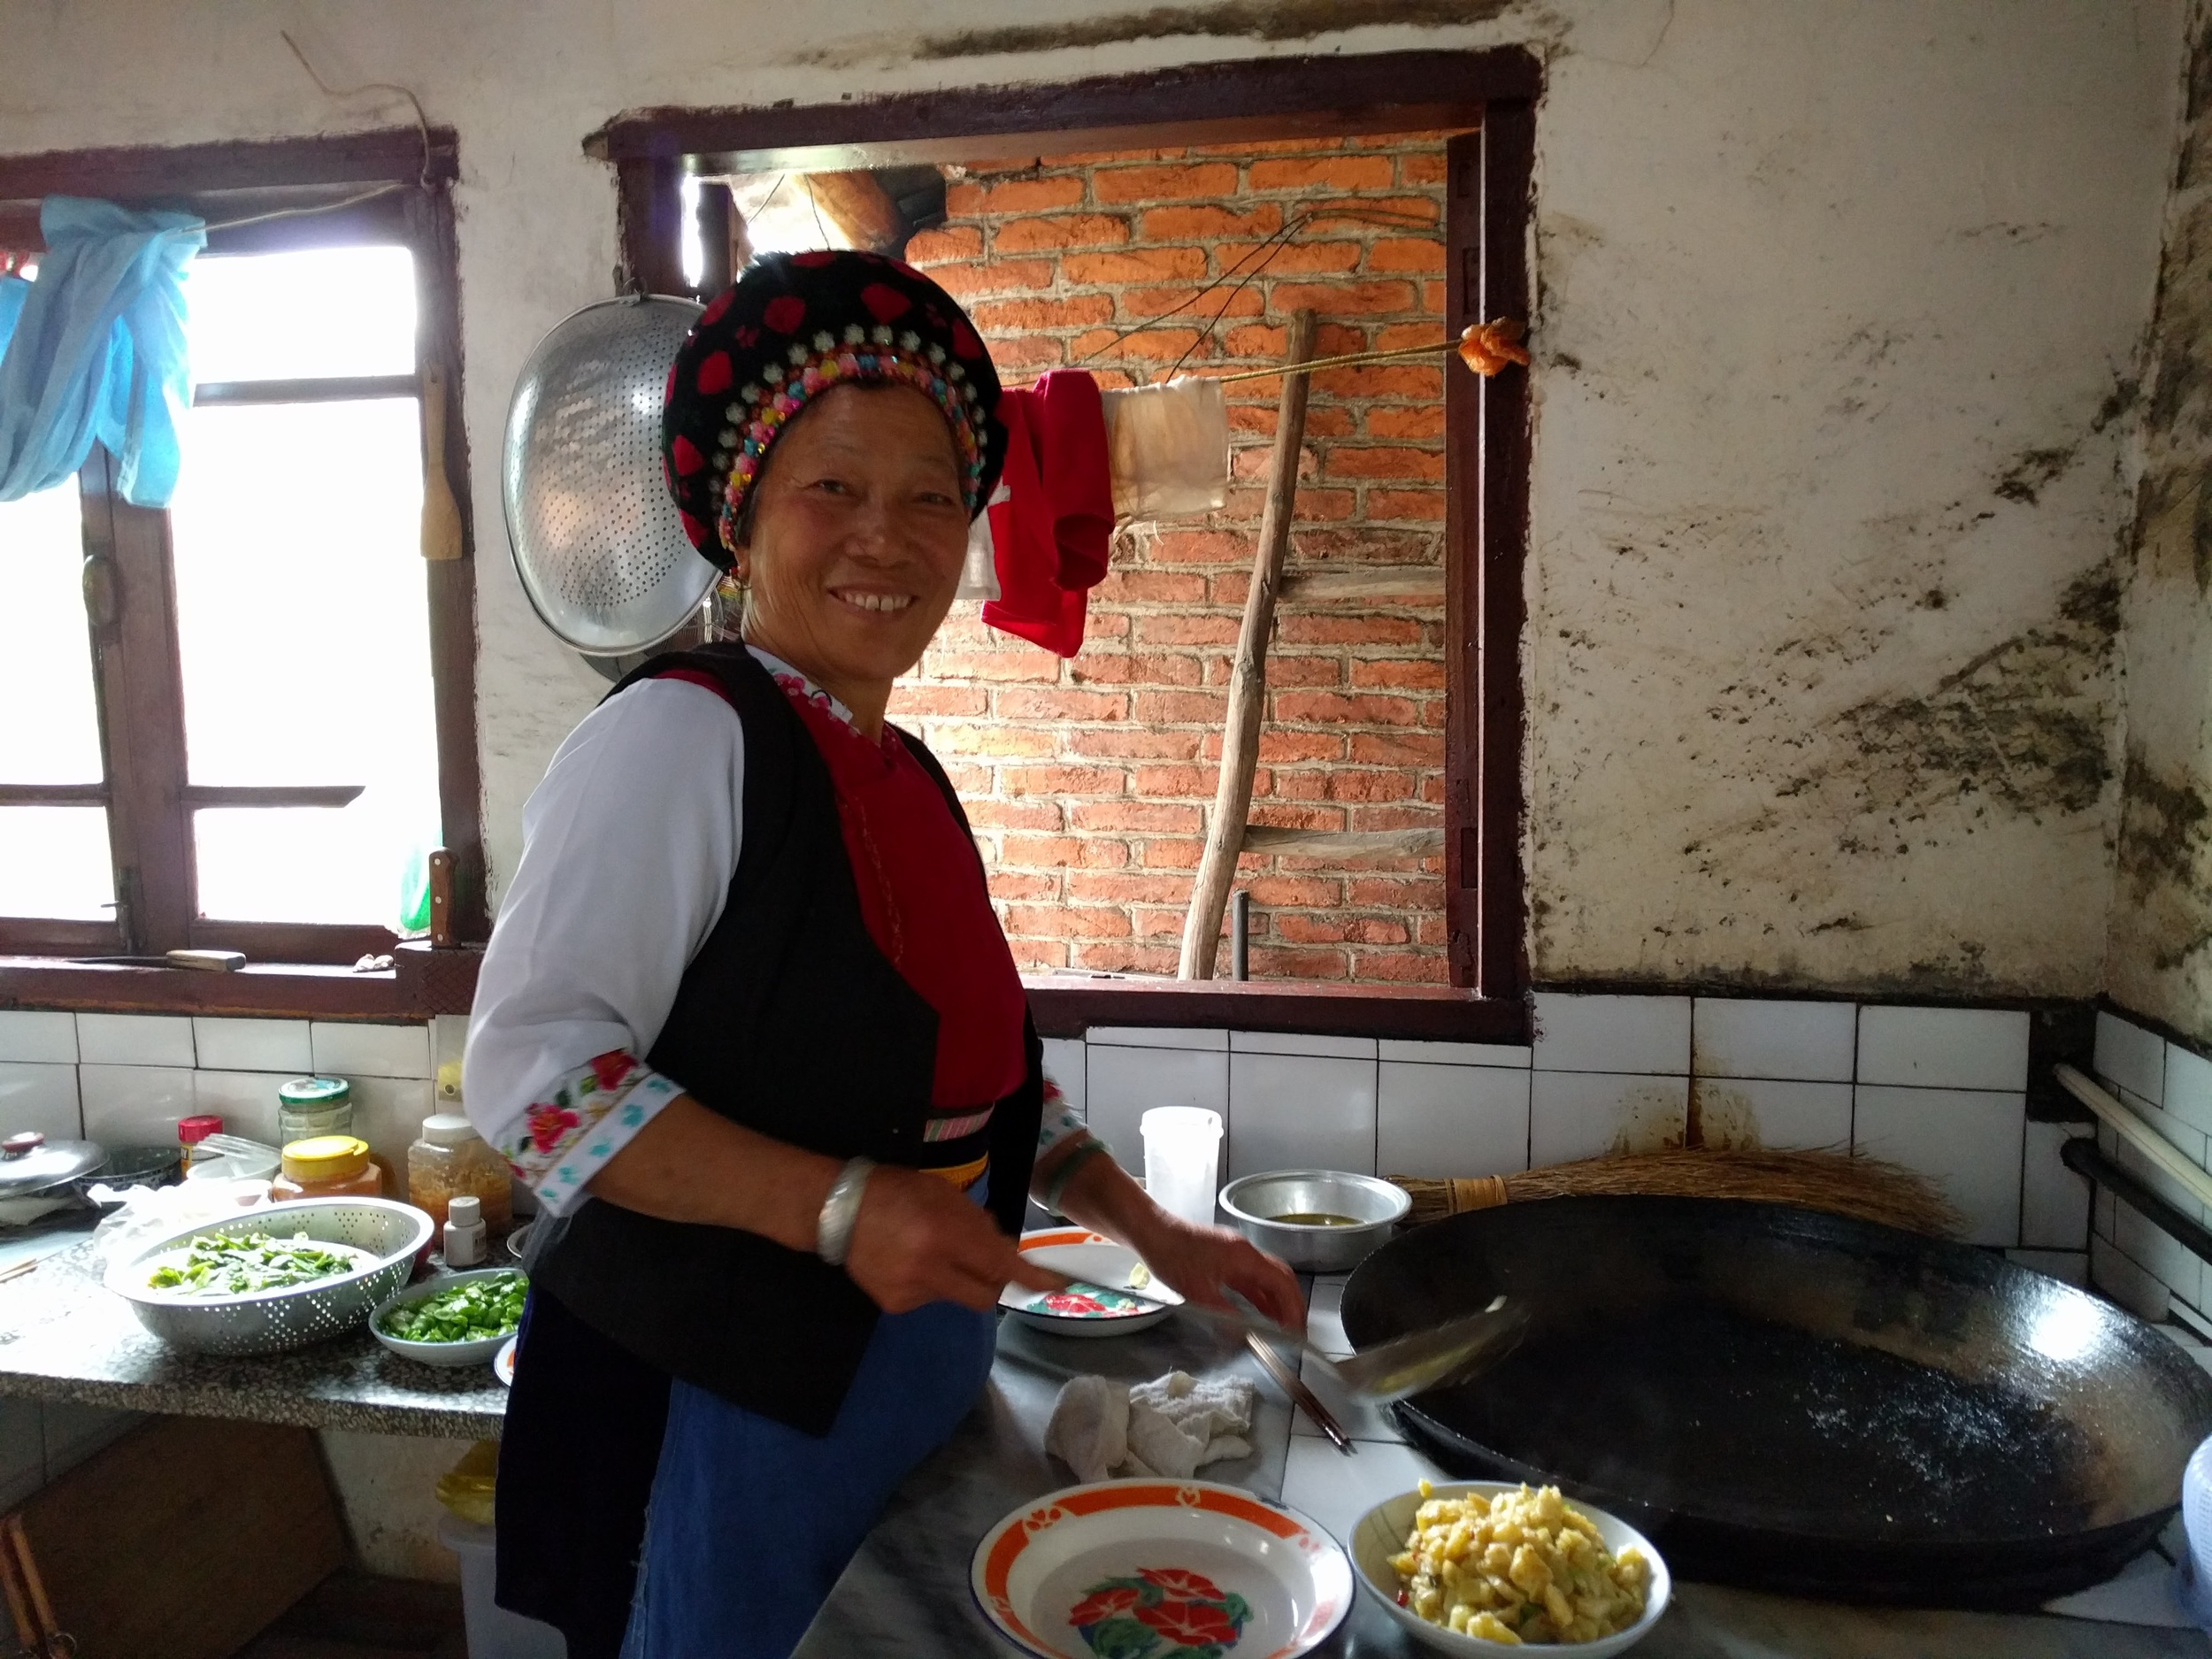 Yang Mama cooking our fresh market veggies in her own kitchen. And yes, the Bai women wear this headdress and outfit in daily life—it's not just for tourists.